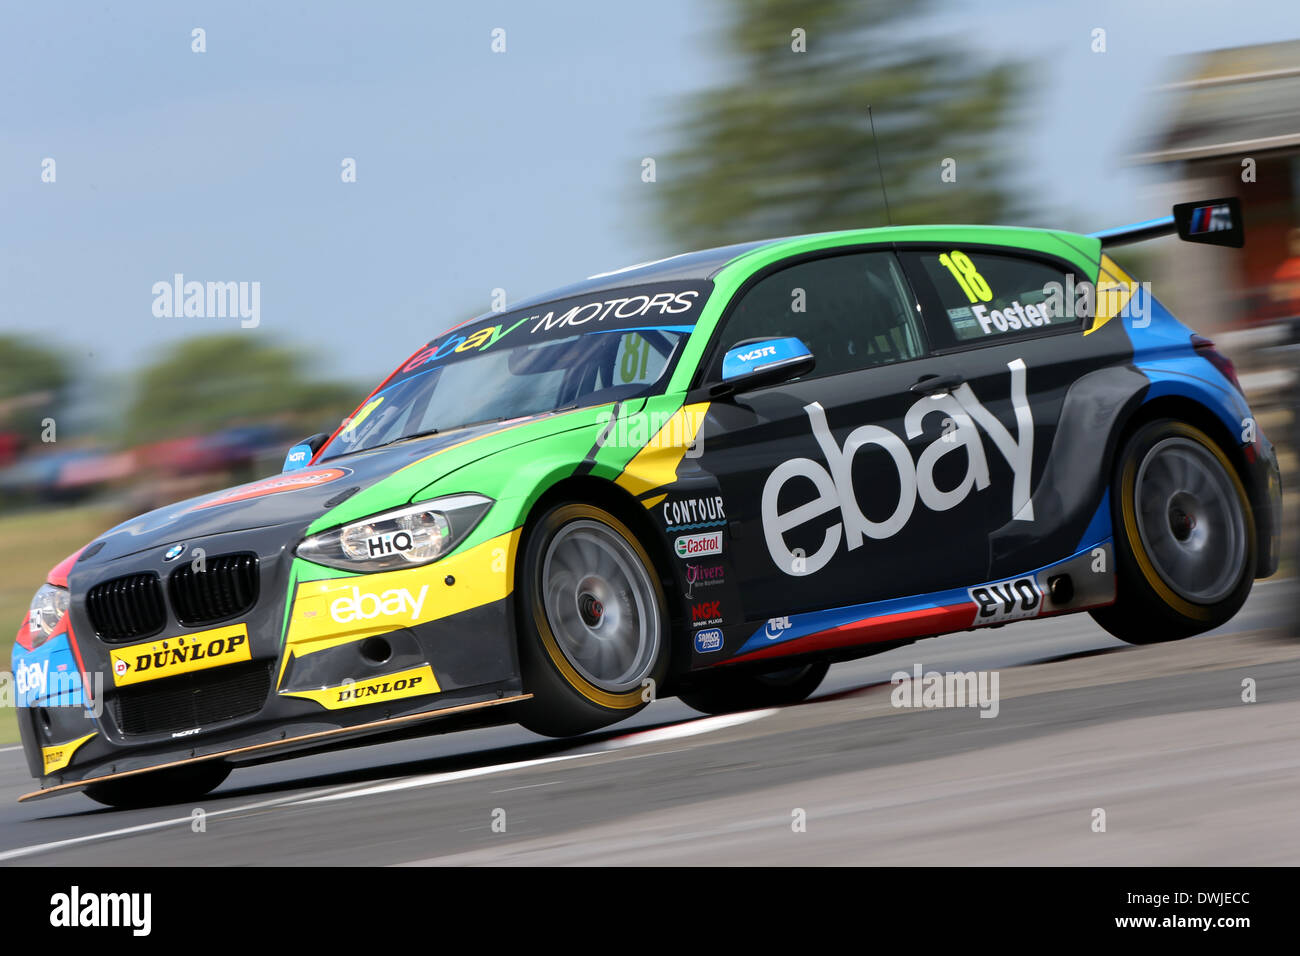 Ebay motors bmw user manuals array nick foster gbr ebay motors bmw 125i m sport stock photo fandeluxe Images